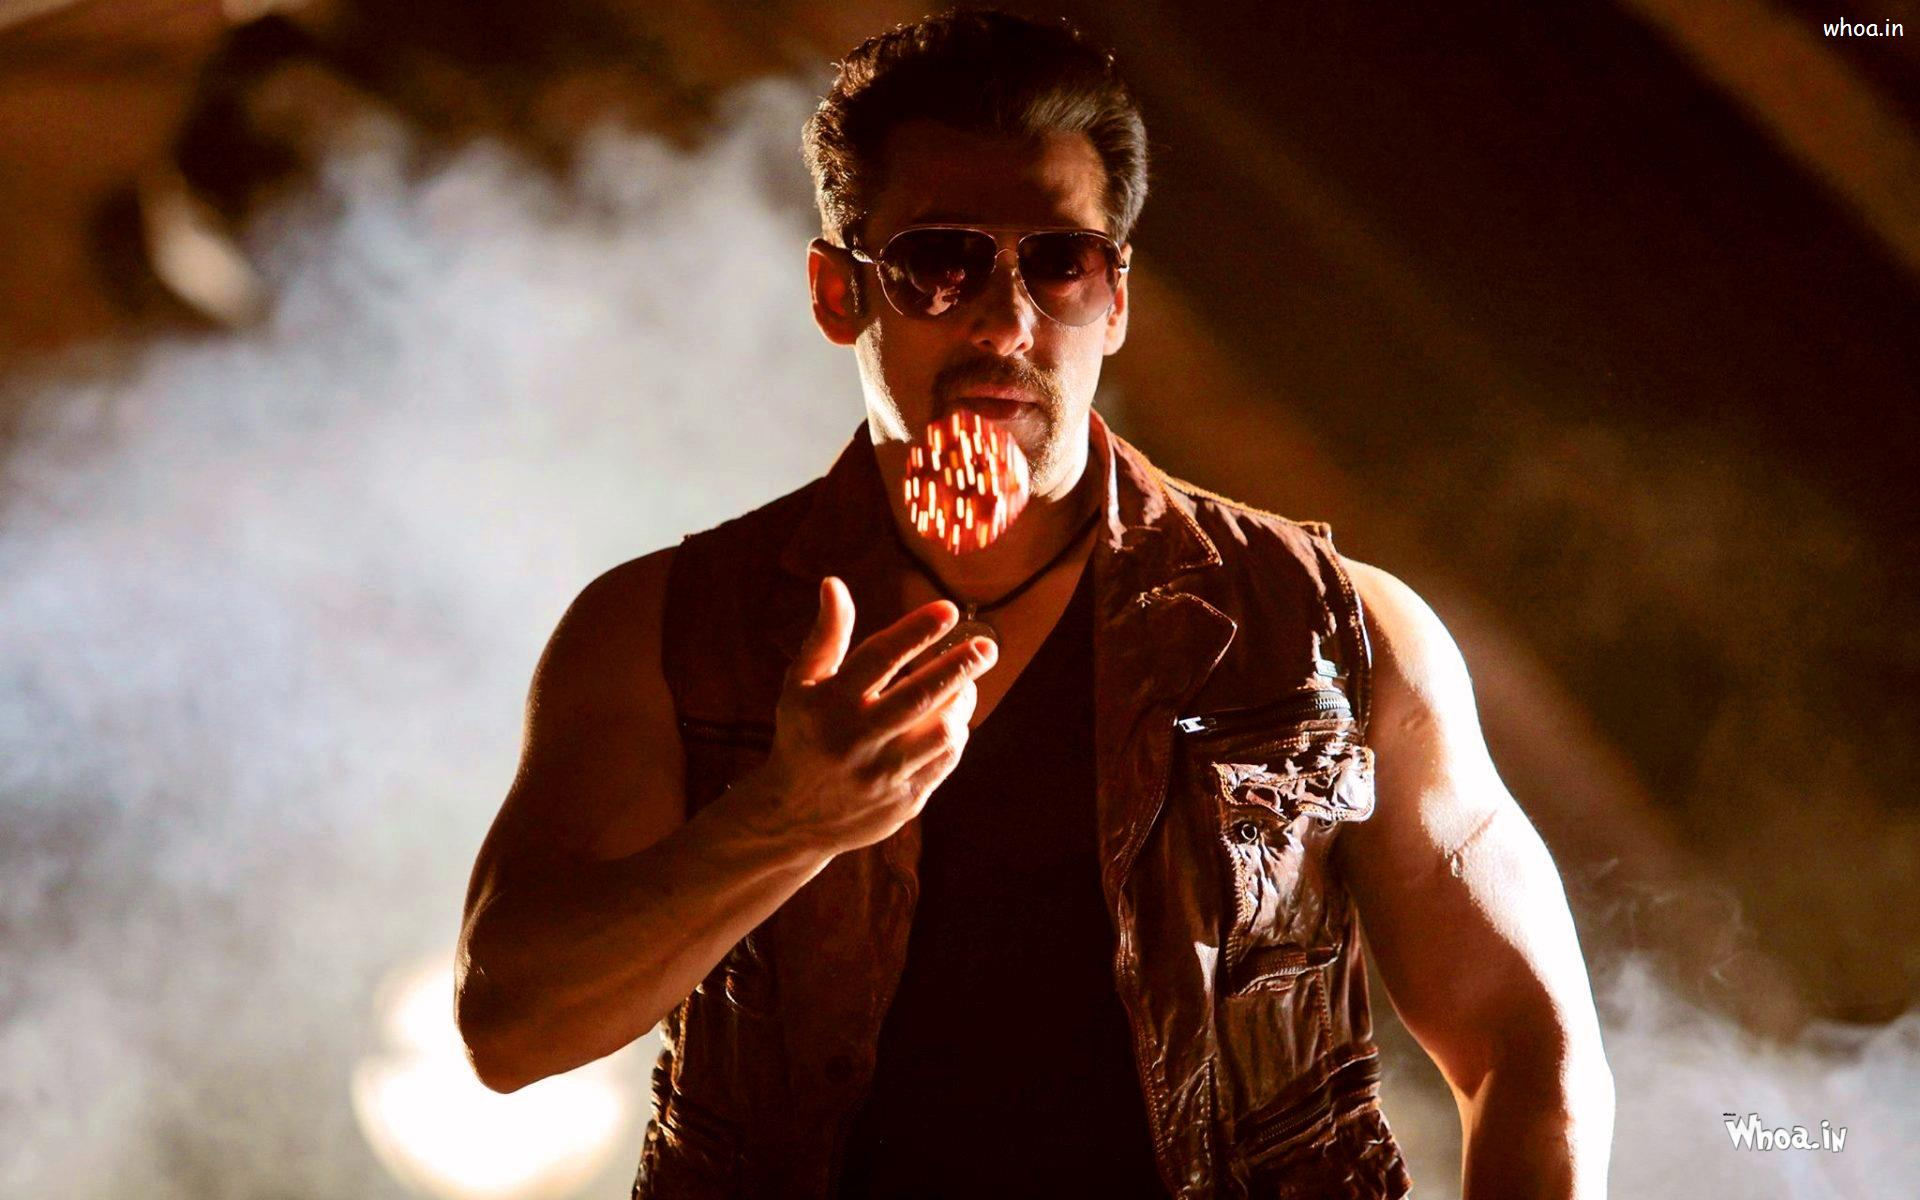 salman khan kick movies hd wallpaper